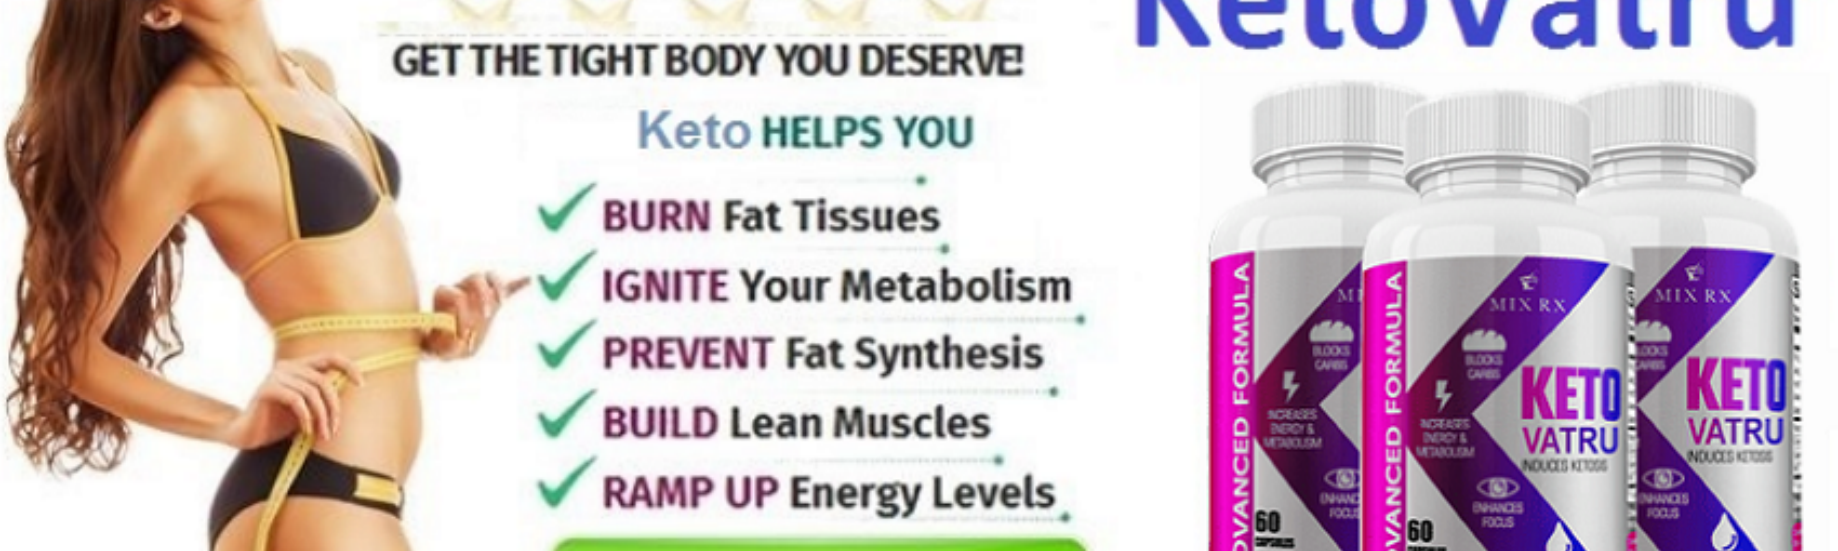 Ketovatru Ketovatru Review Keto Supplement